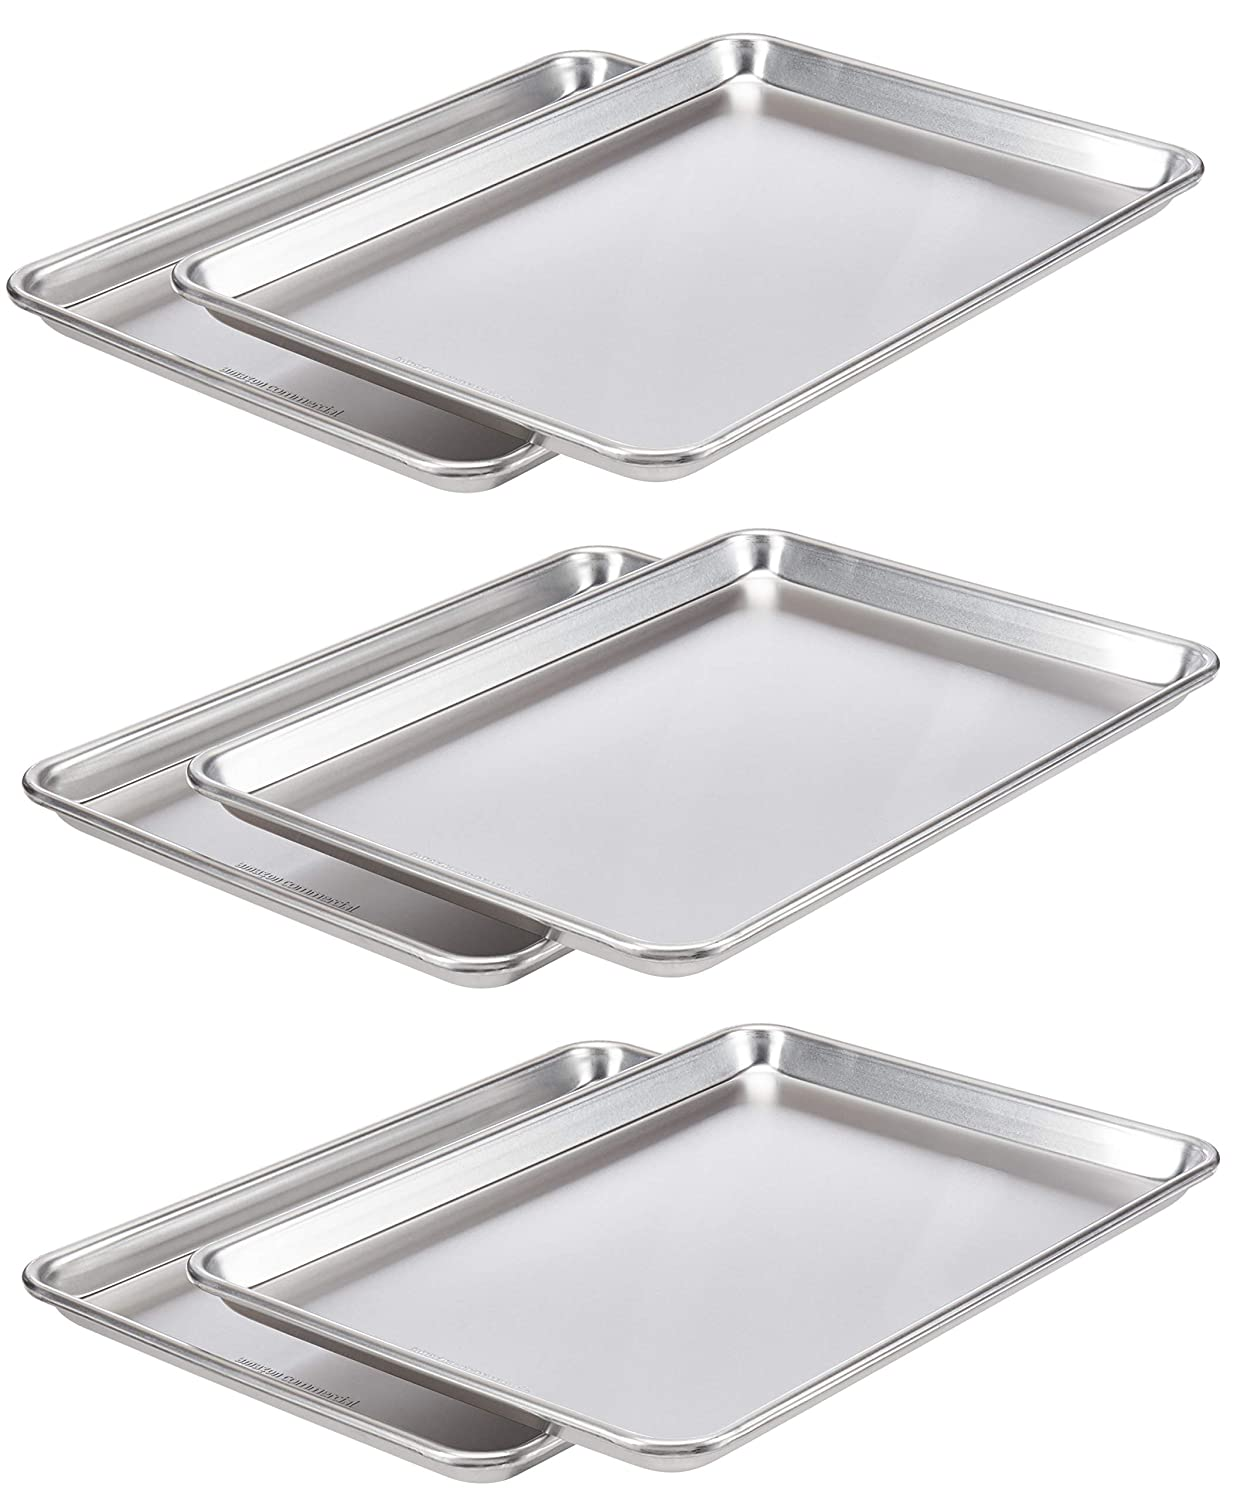 AmazonCommercial Aluminum Baking Sheet Some reservation Pan 2 x 12 1 Special price for a limited time 17.9